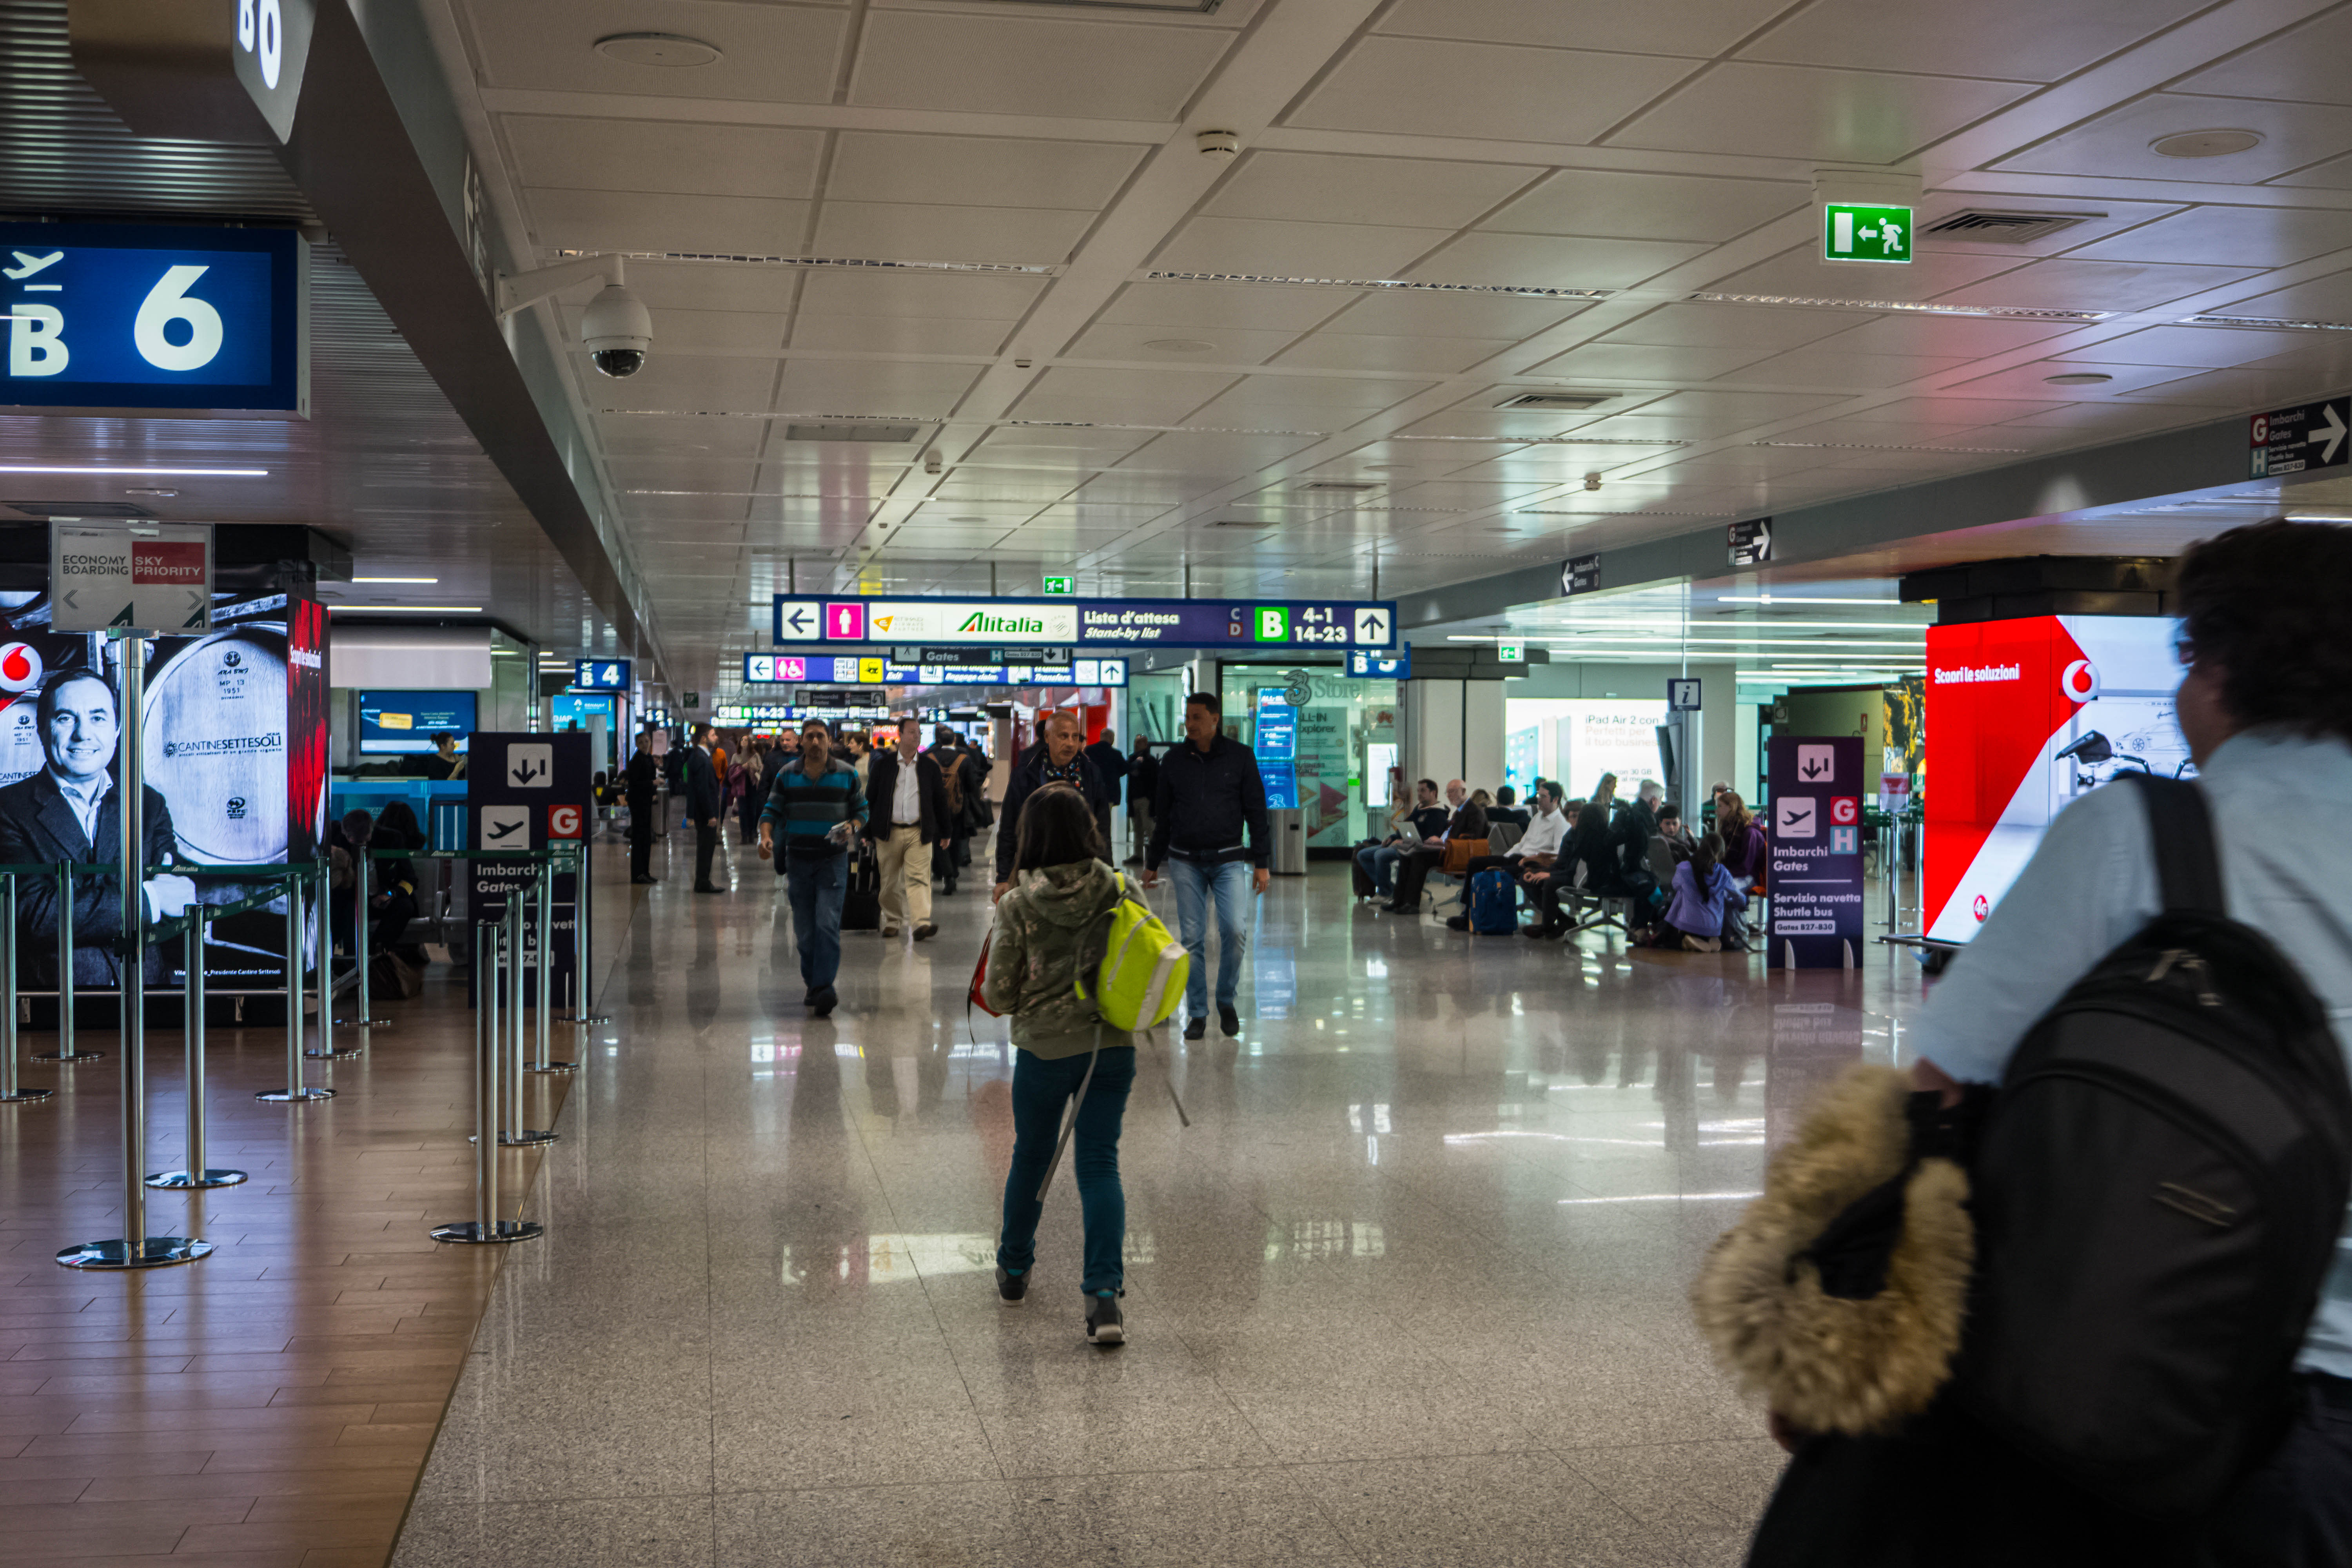 The net area of Terminal 1 of the airport Rome Fiumicino